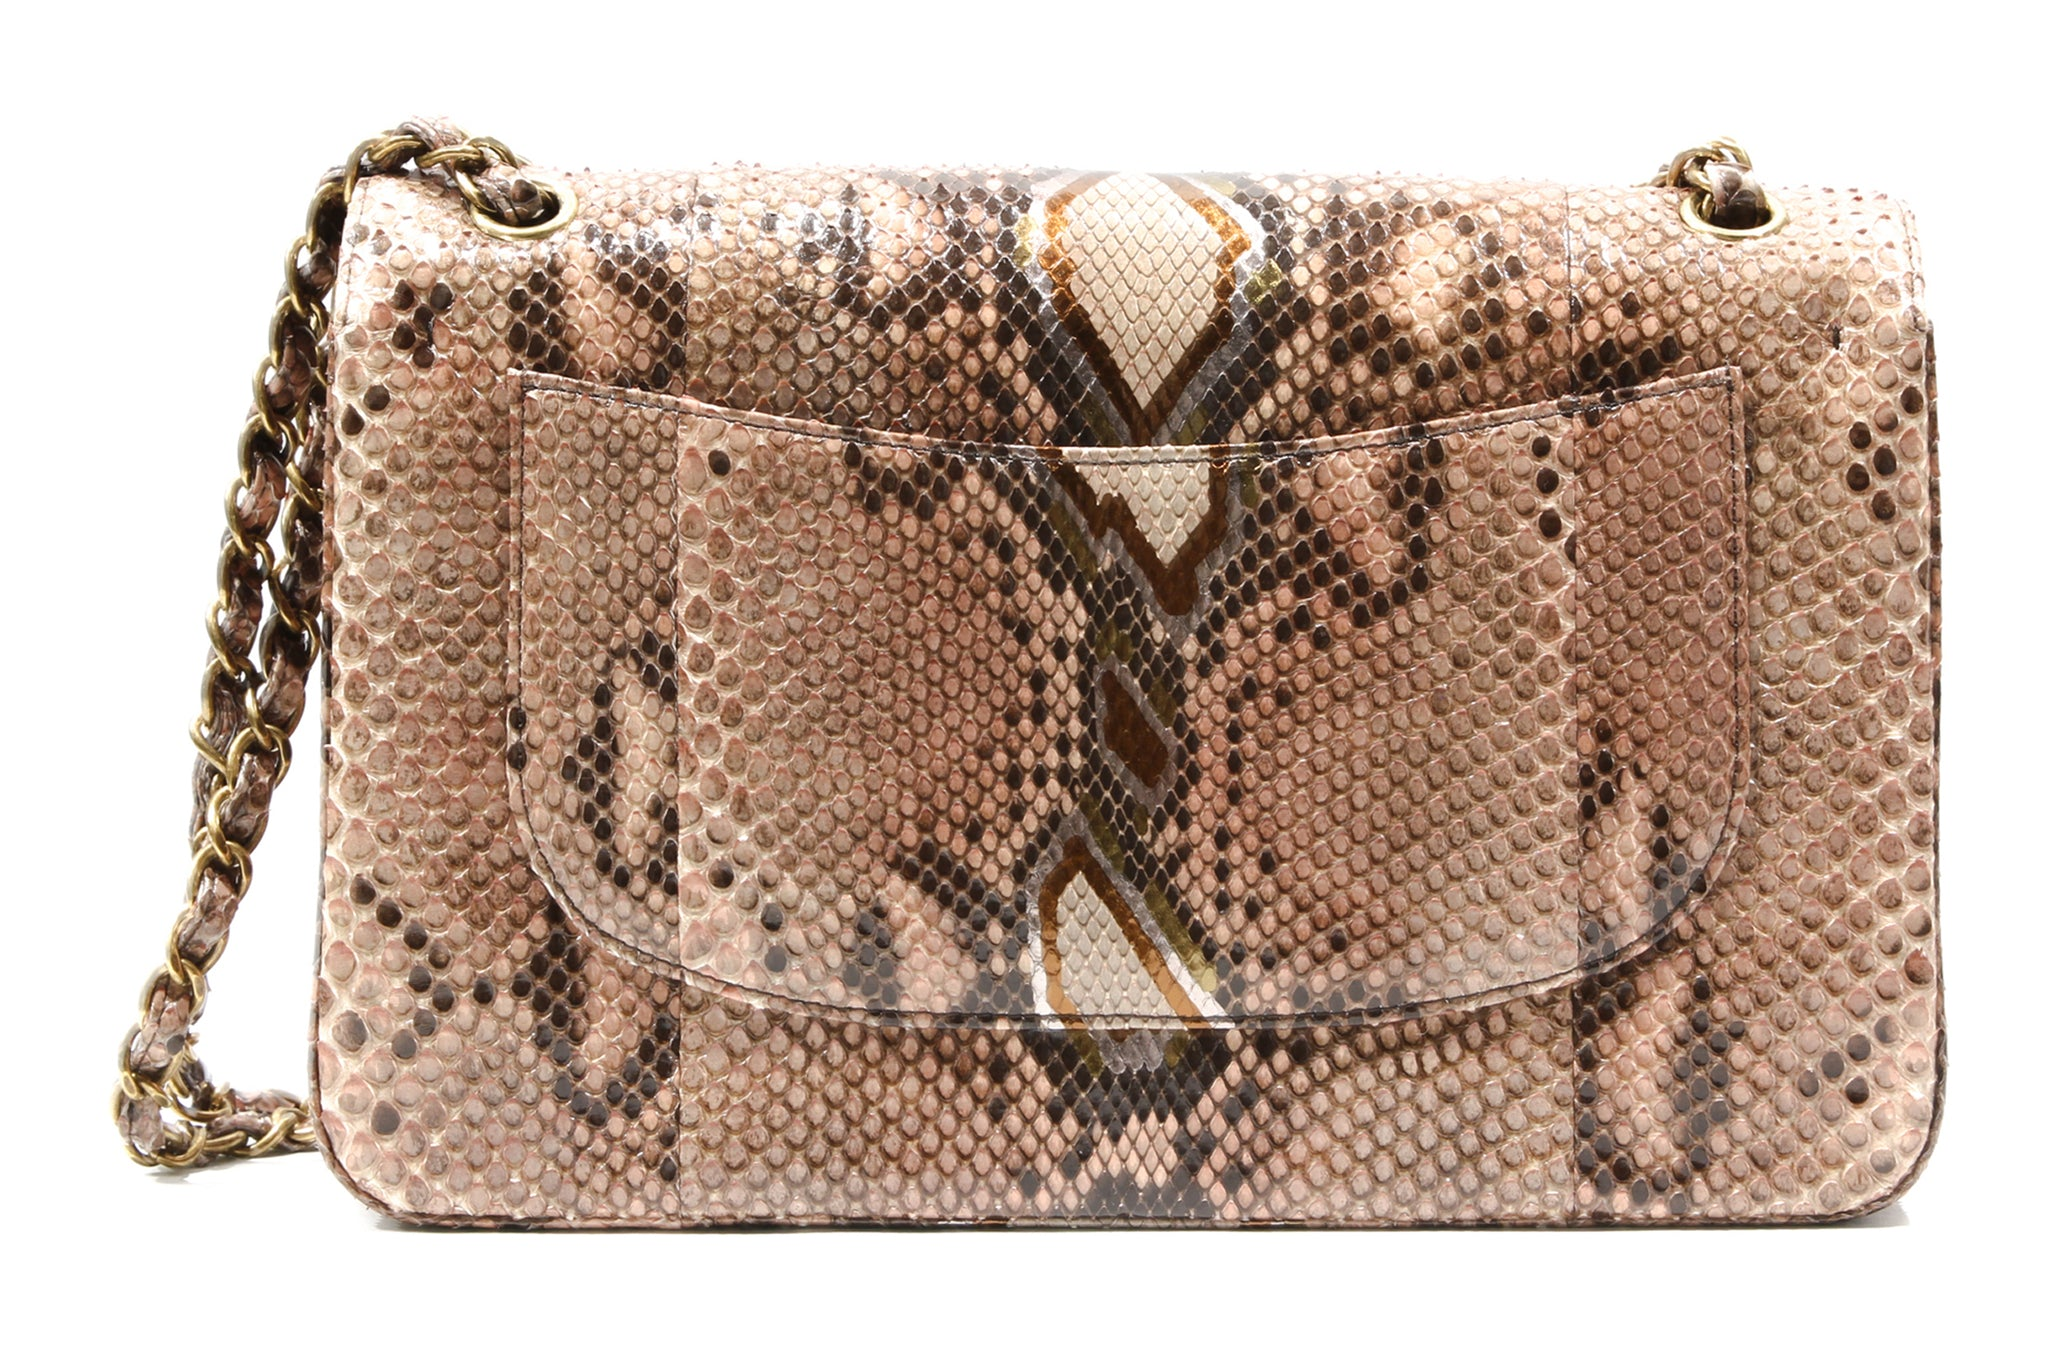 02d297162341 ... Load image into Gallery viewer, CHANEL Brown Timeless Python shoulder  bag ...